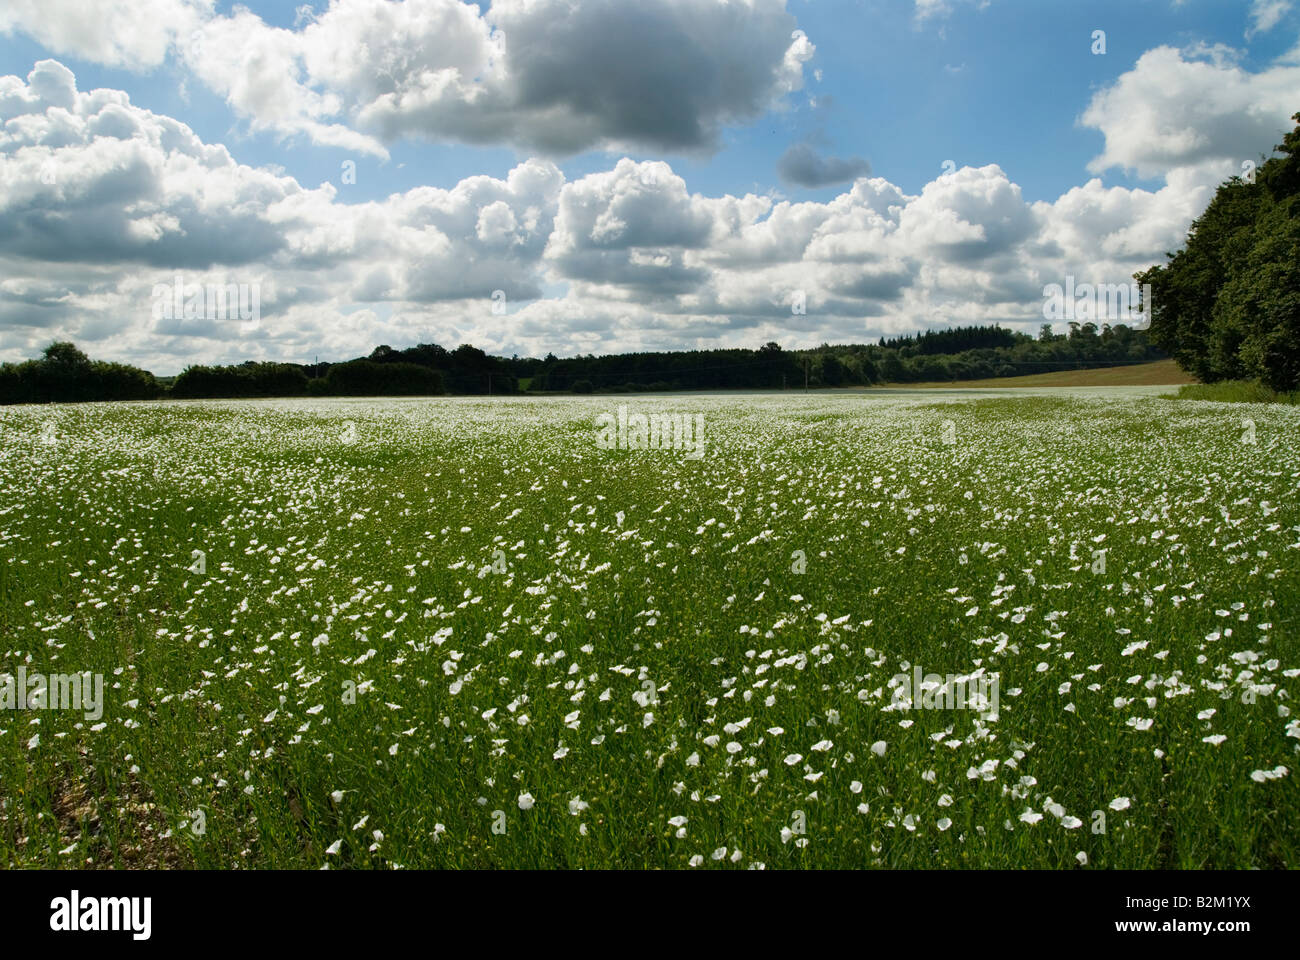 A Field Of White Flowers In Southern England With A Blue Sky And